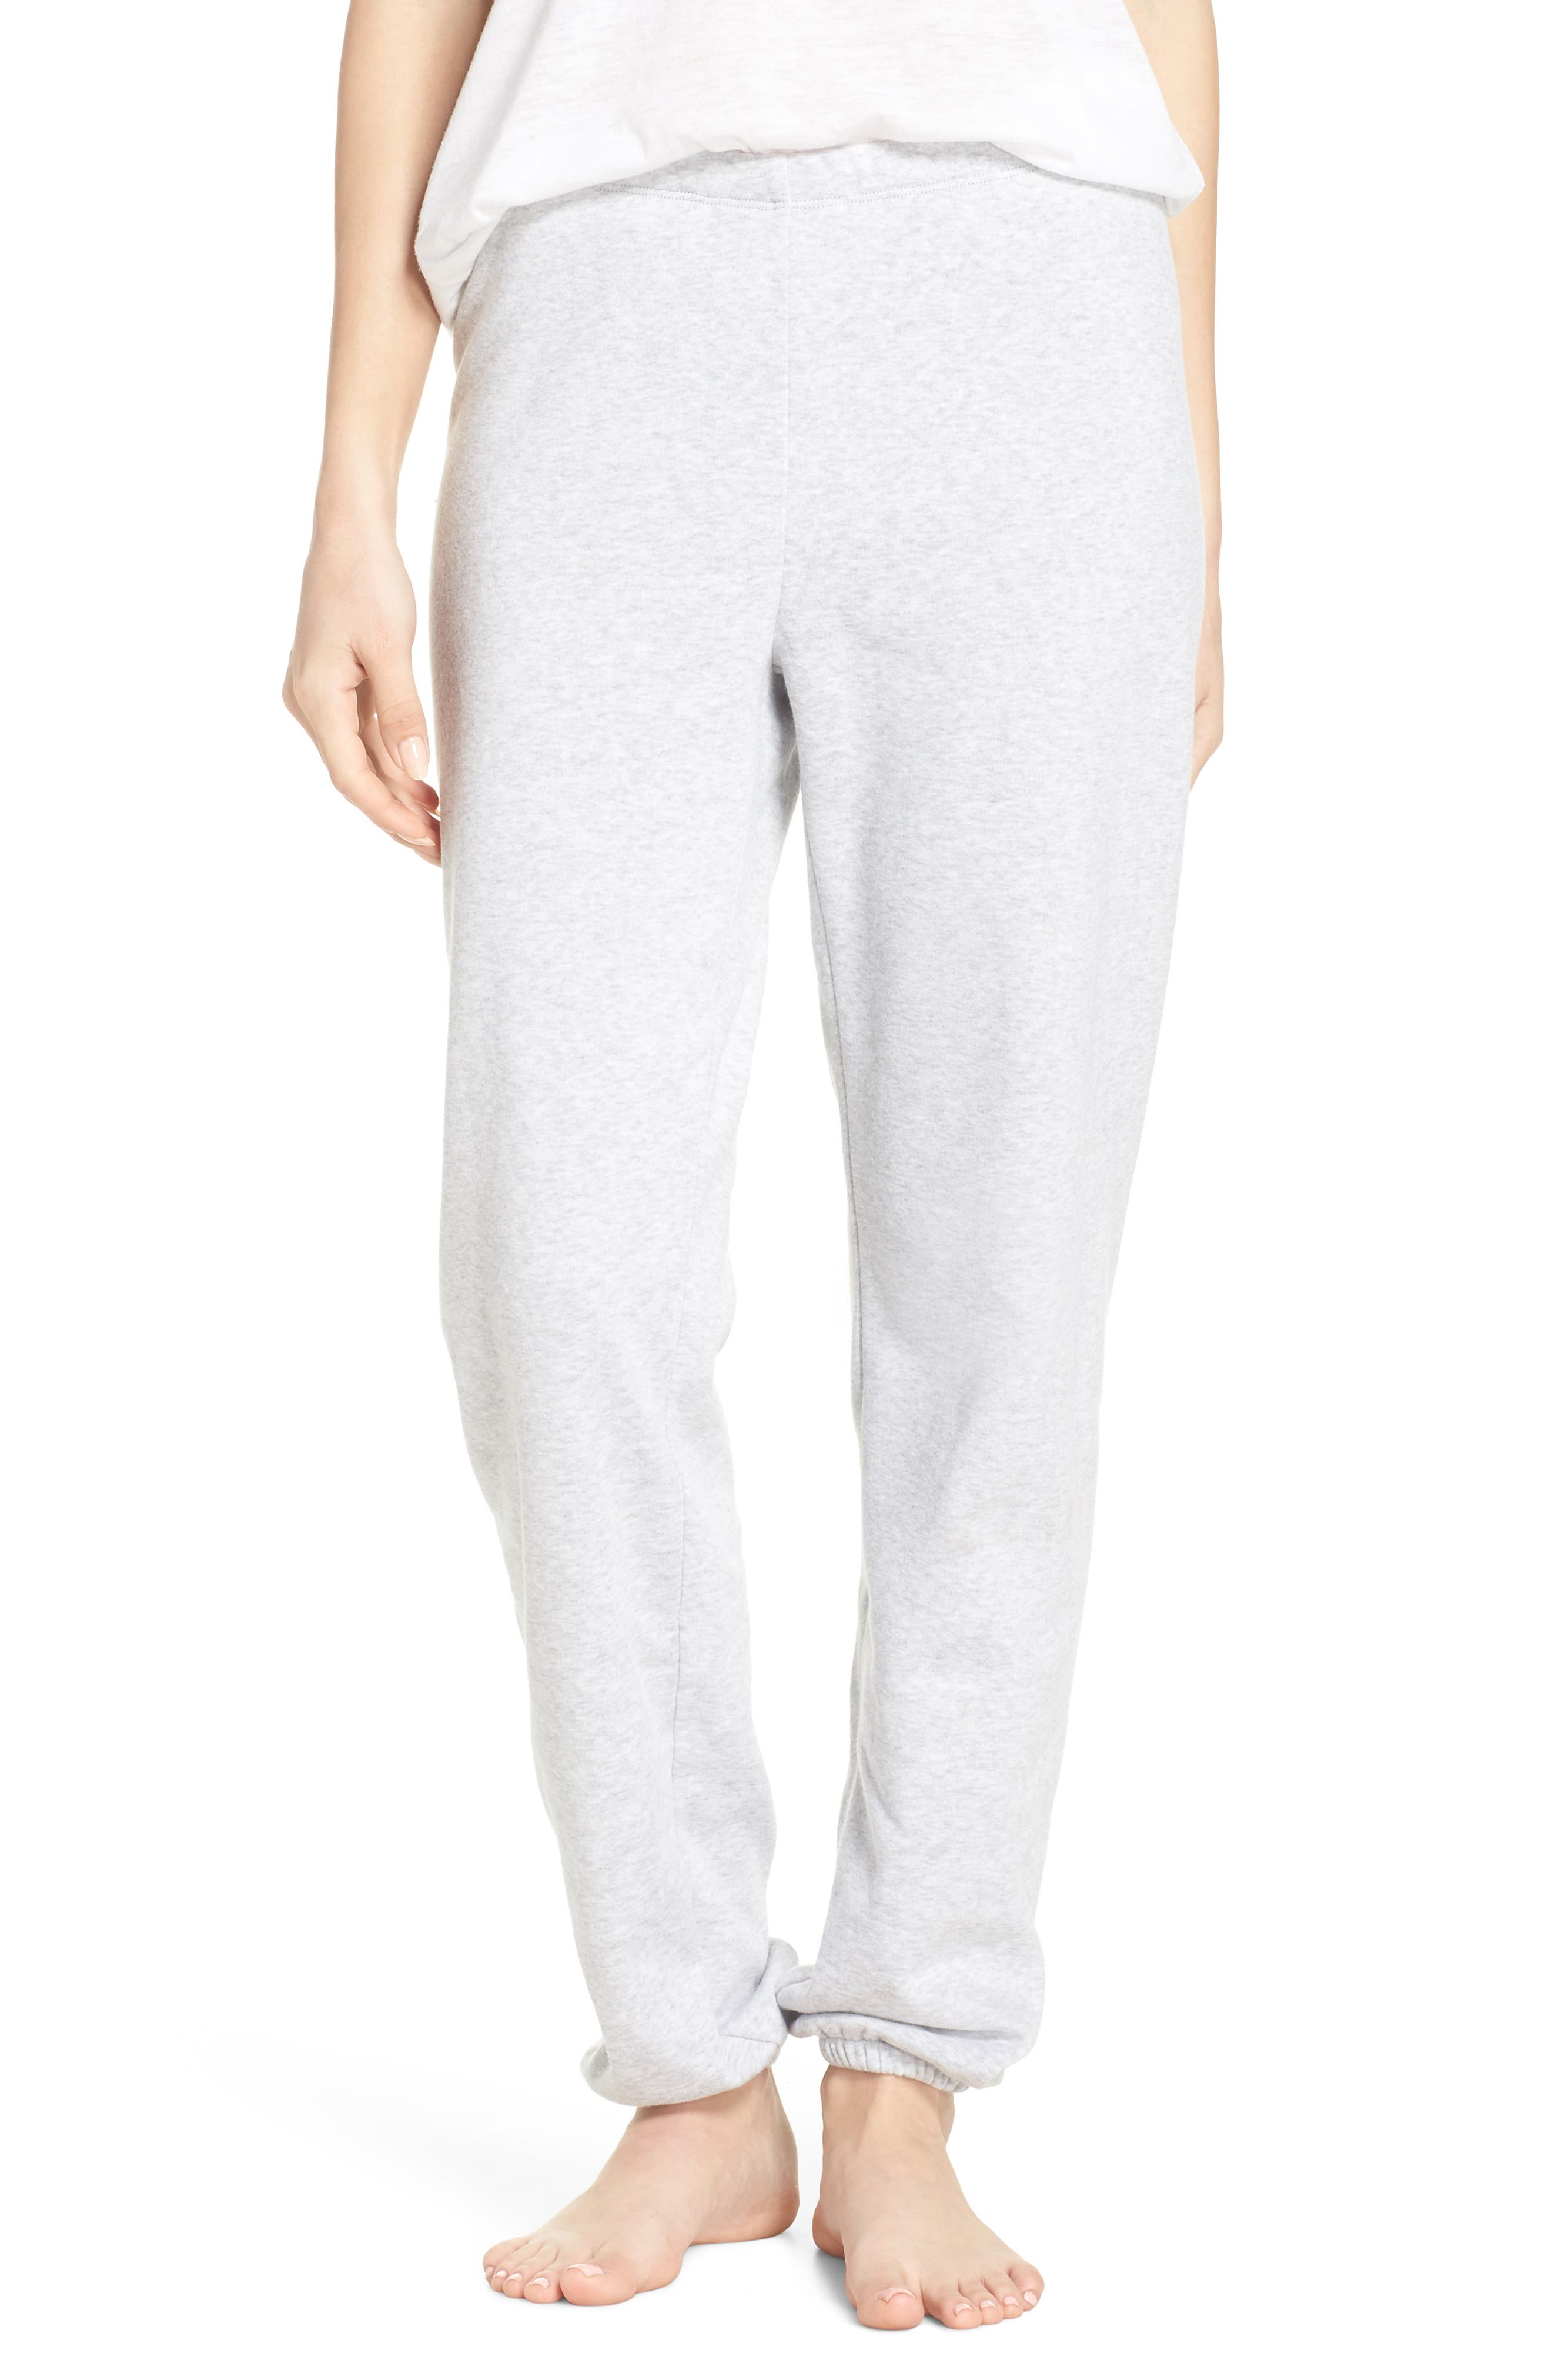 Make + Model Sleepy High Rise Lounge Jogger Pants